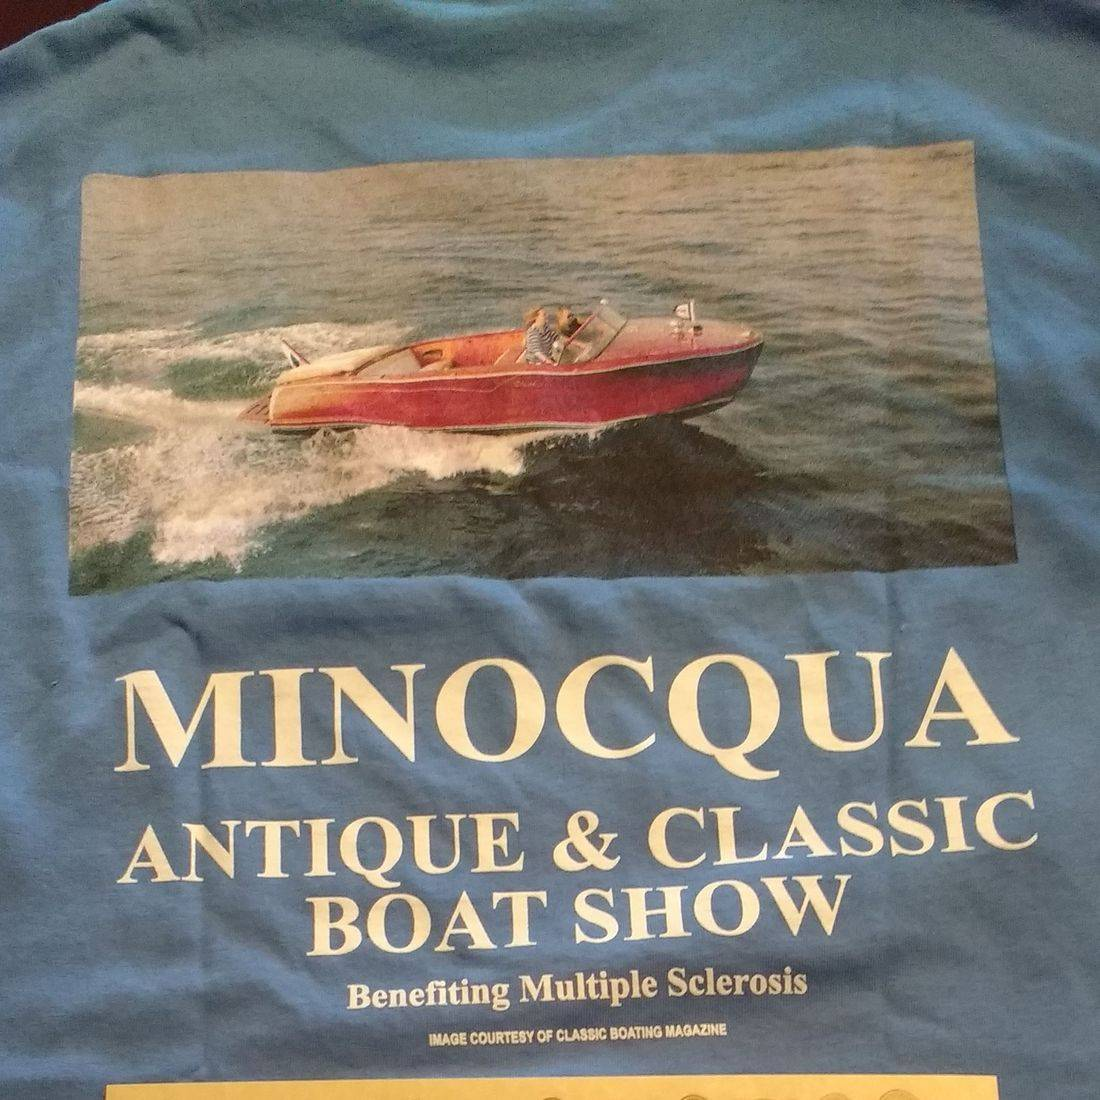 Antique and classic boat show winner